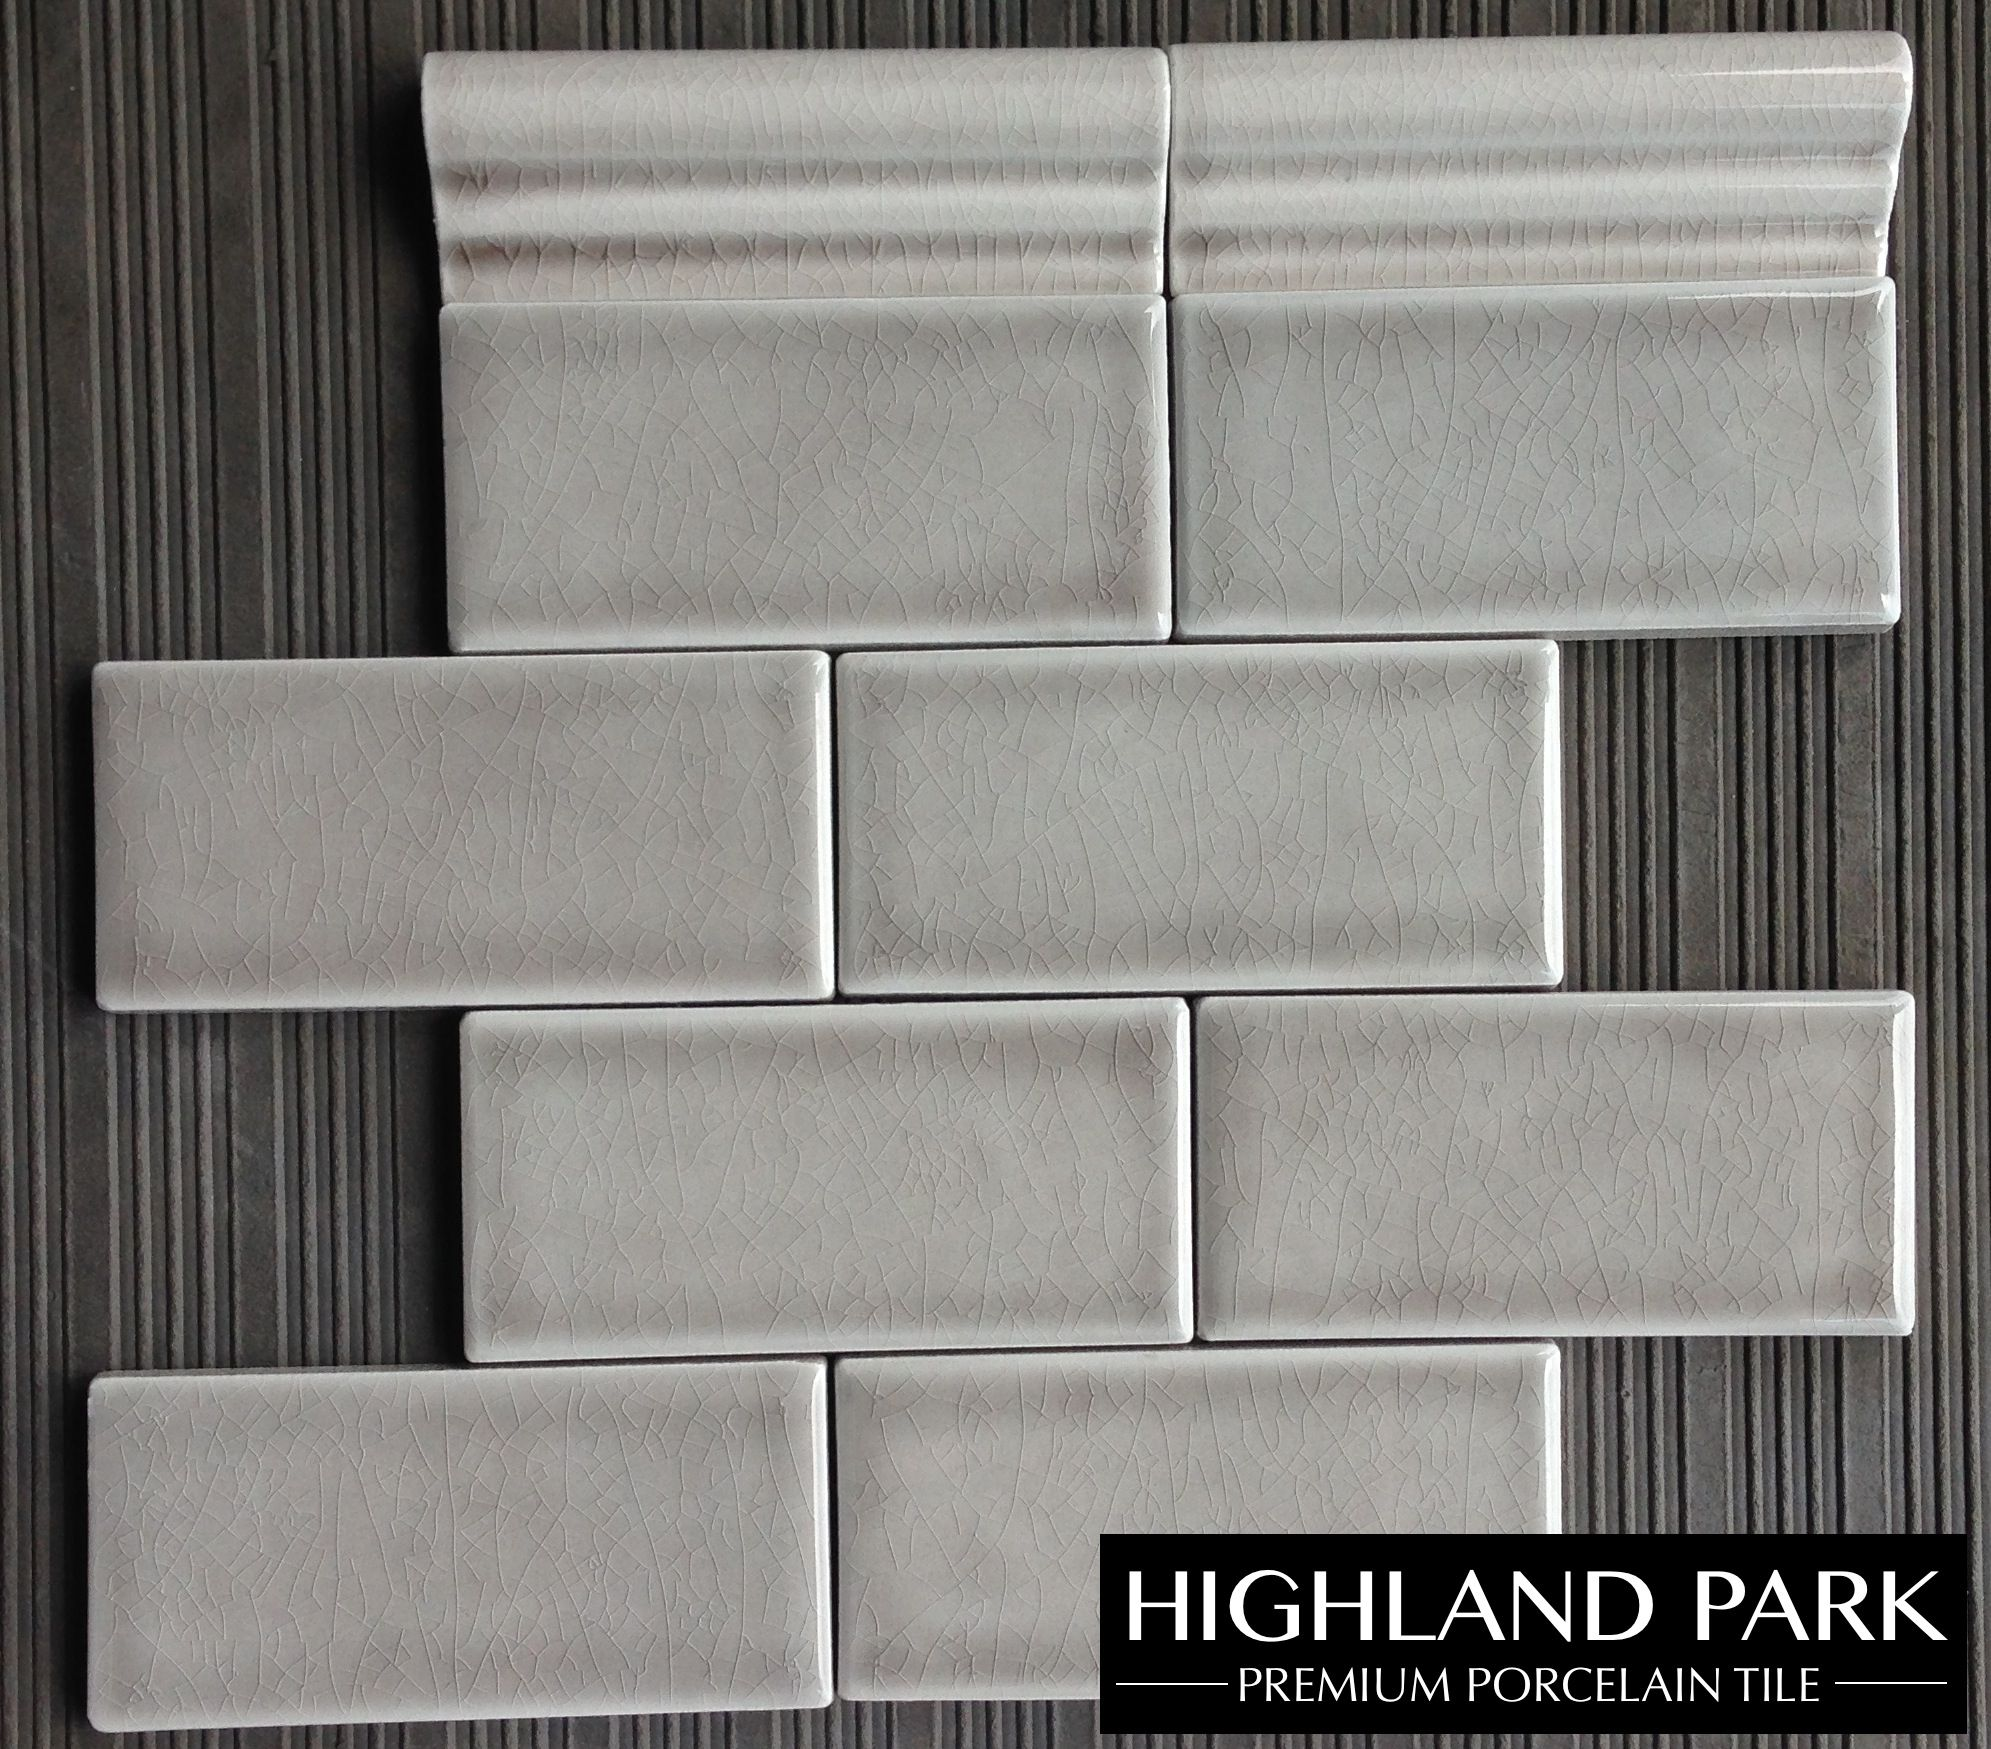 Dove Gray 3x6 Le Subway Tile Available Online From Thebuilderdepot For 8 50 Square